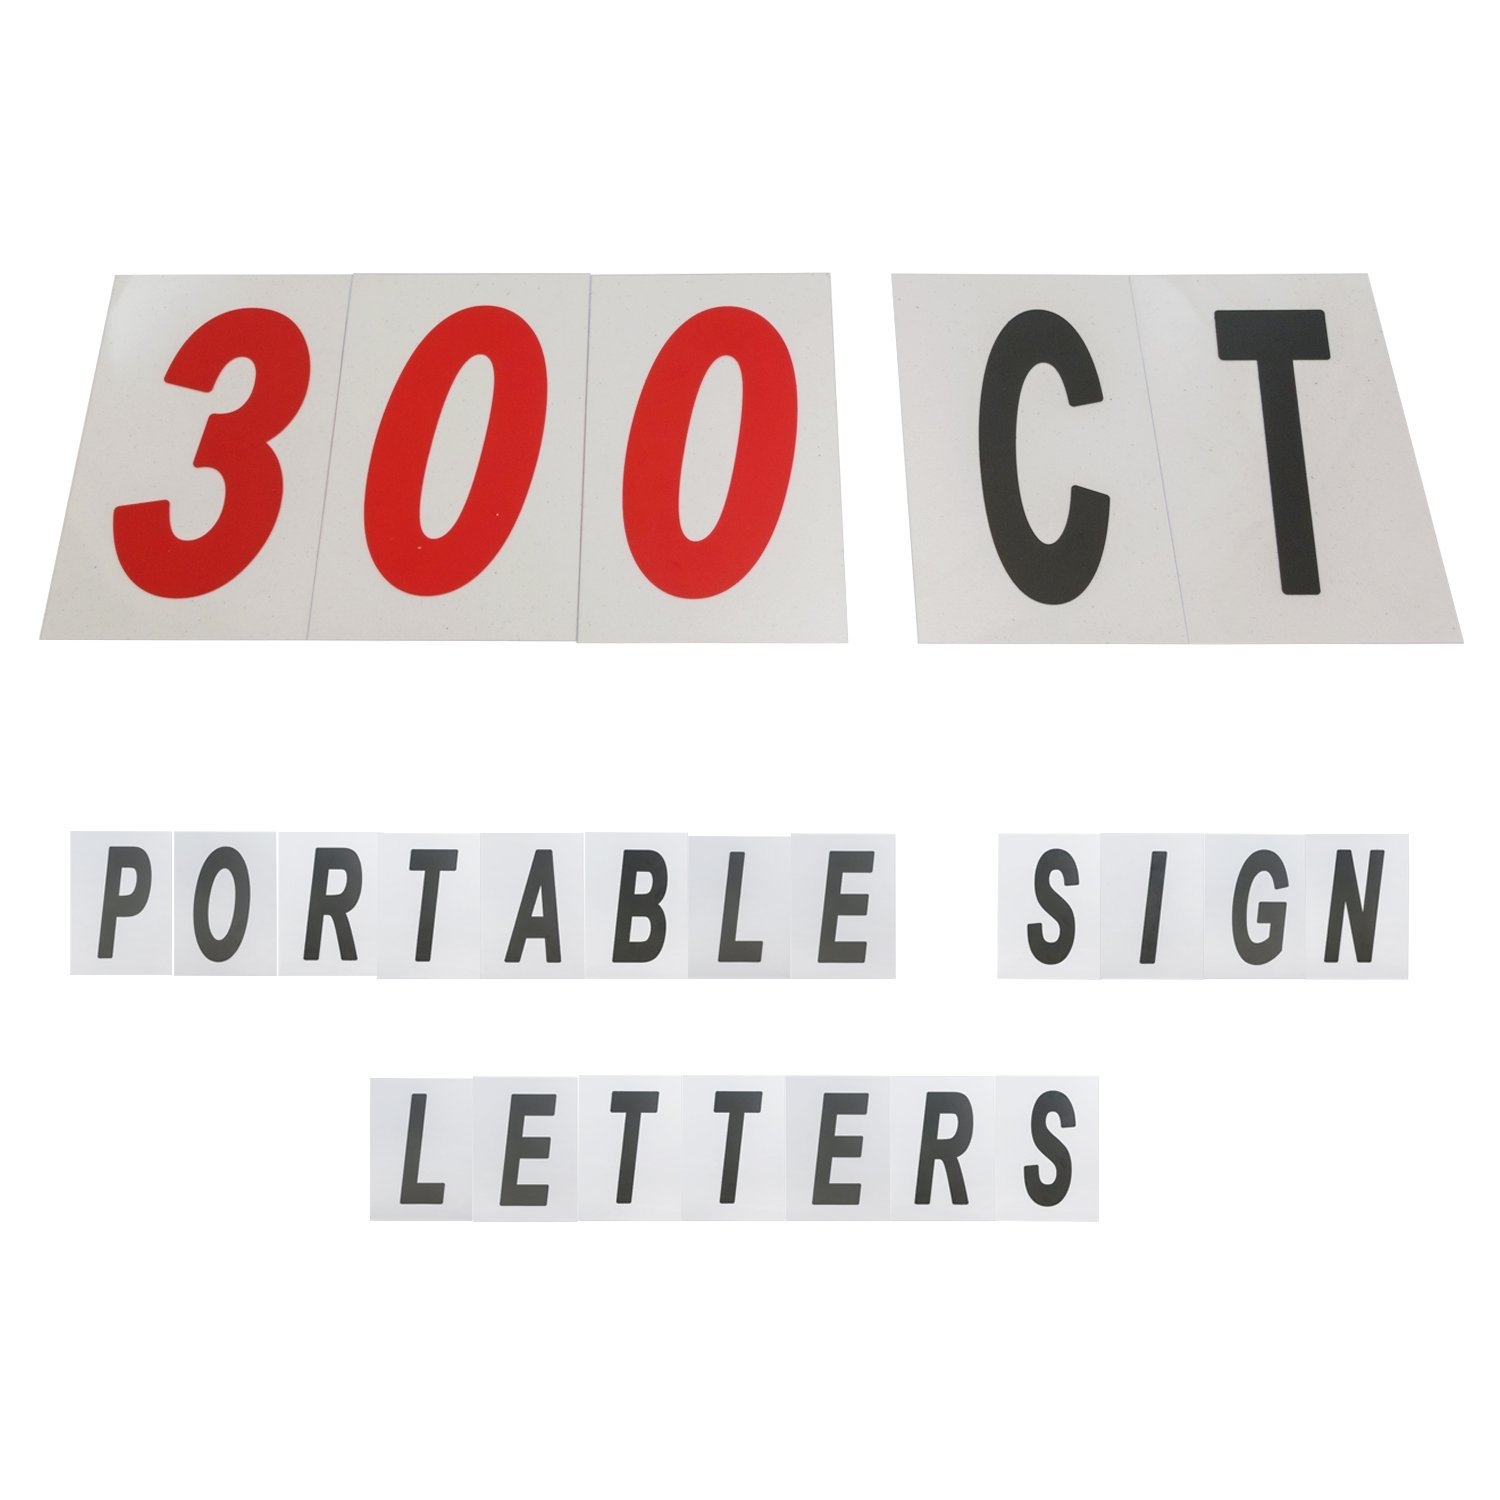 Houseables Outdoor Sign Letters & Numbers, Plastic, 8 ⅞ x 5 ½ Inch, Set Of 300, Black and Red, UV-Protected, Portable Signs, Flexible, Copy Flex, For Changeable Marquee, Reader Board, Lettering Track